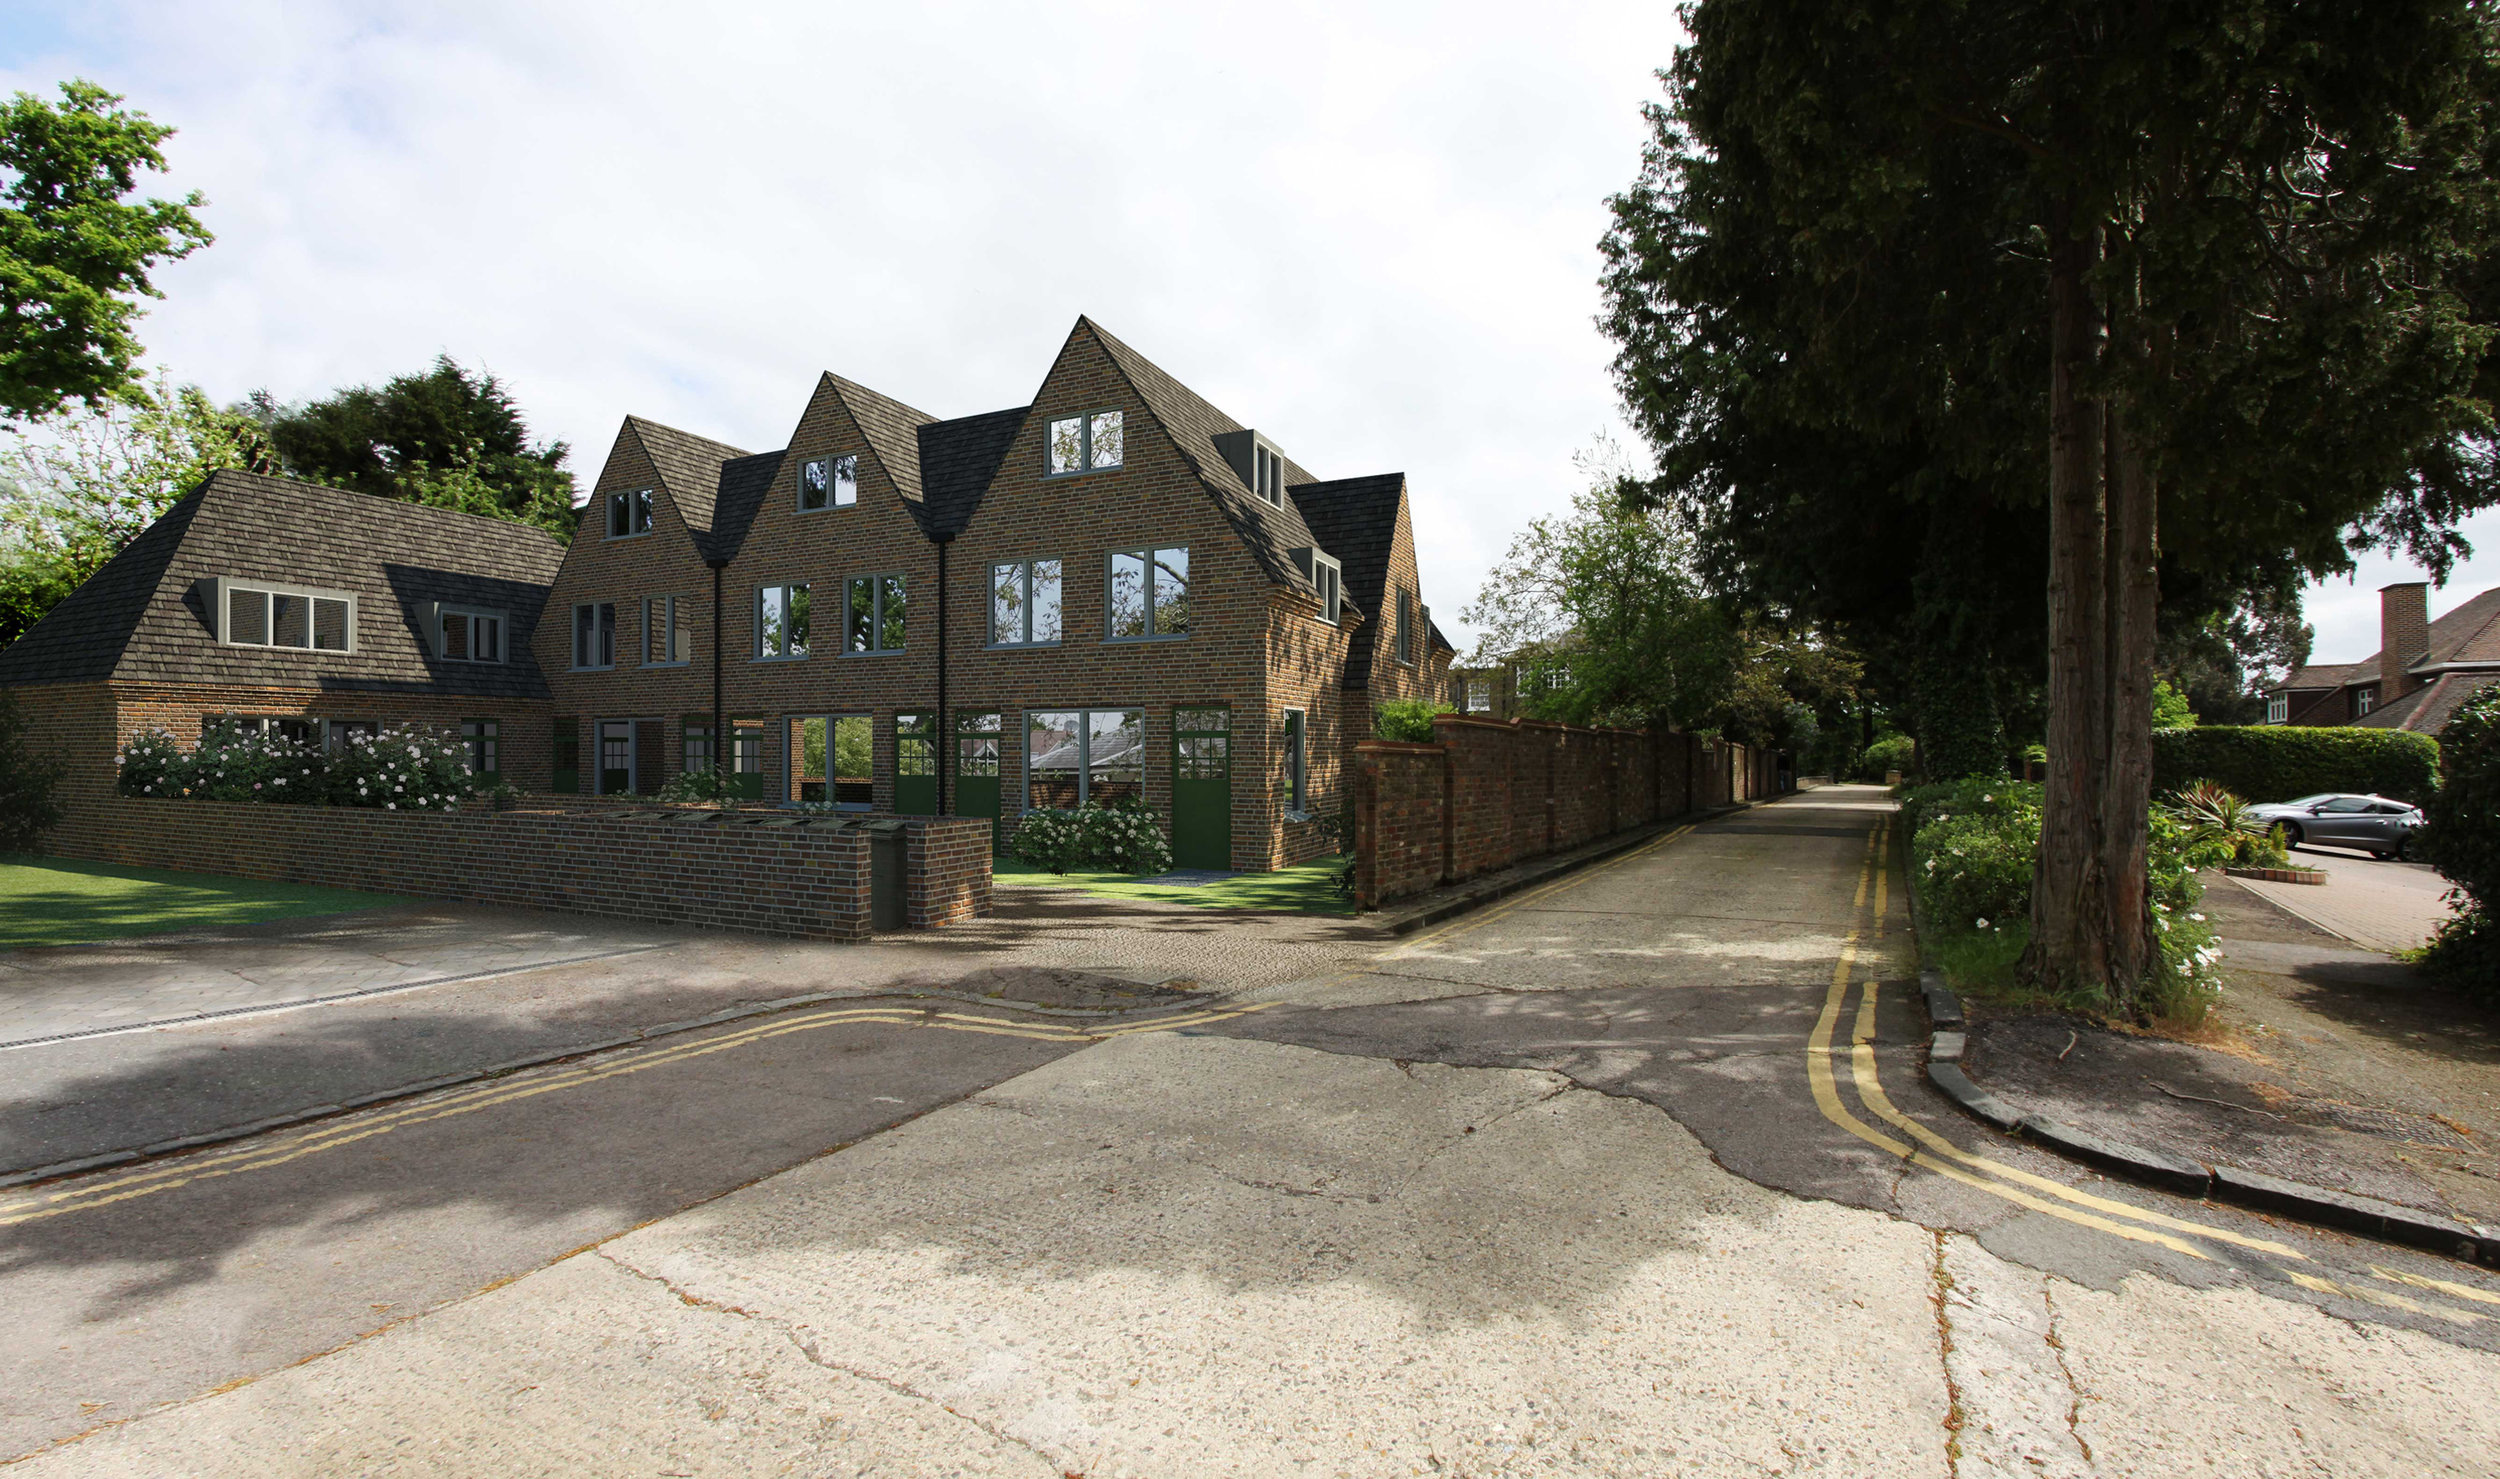 New build 2300sqm residential development, fourteen flats and two house on Farorna Walk in Enfield.